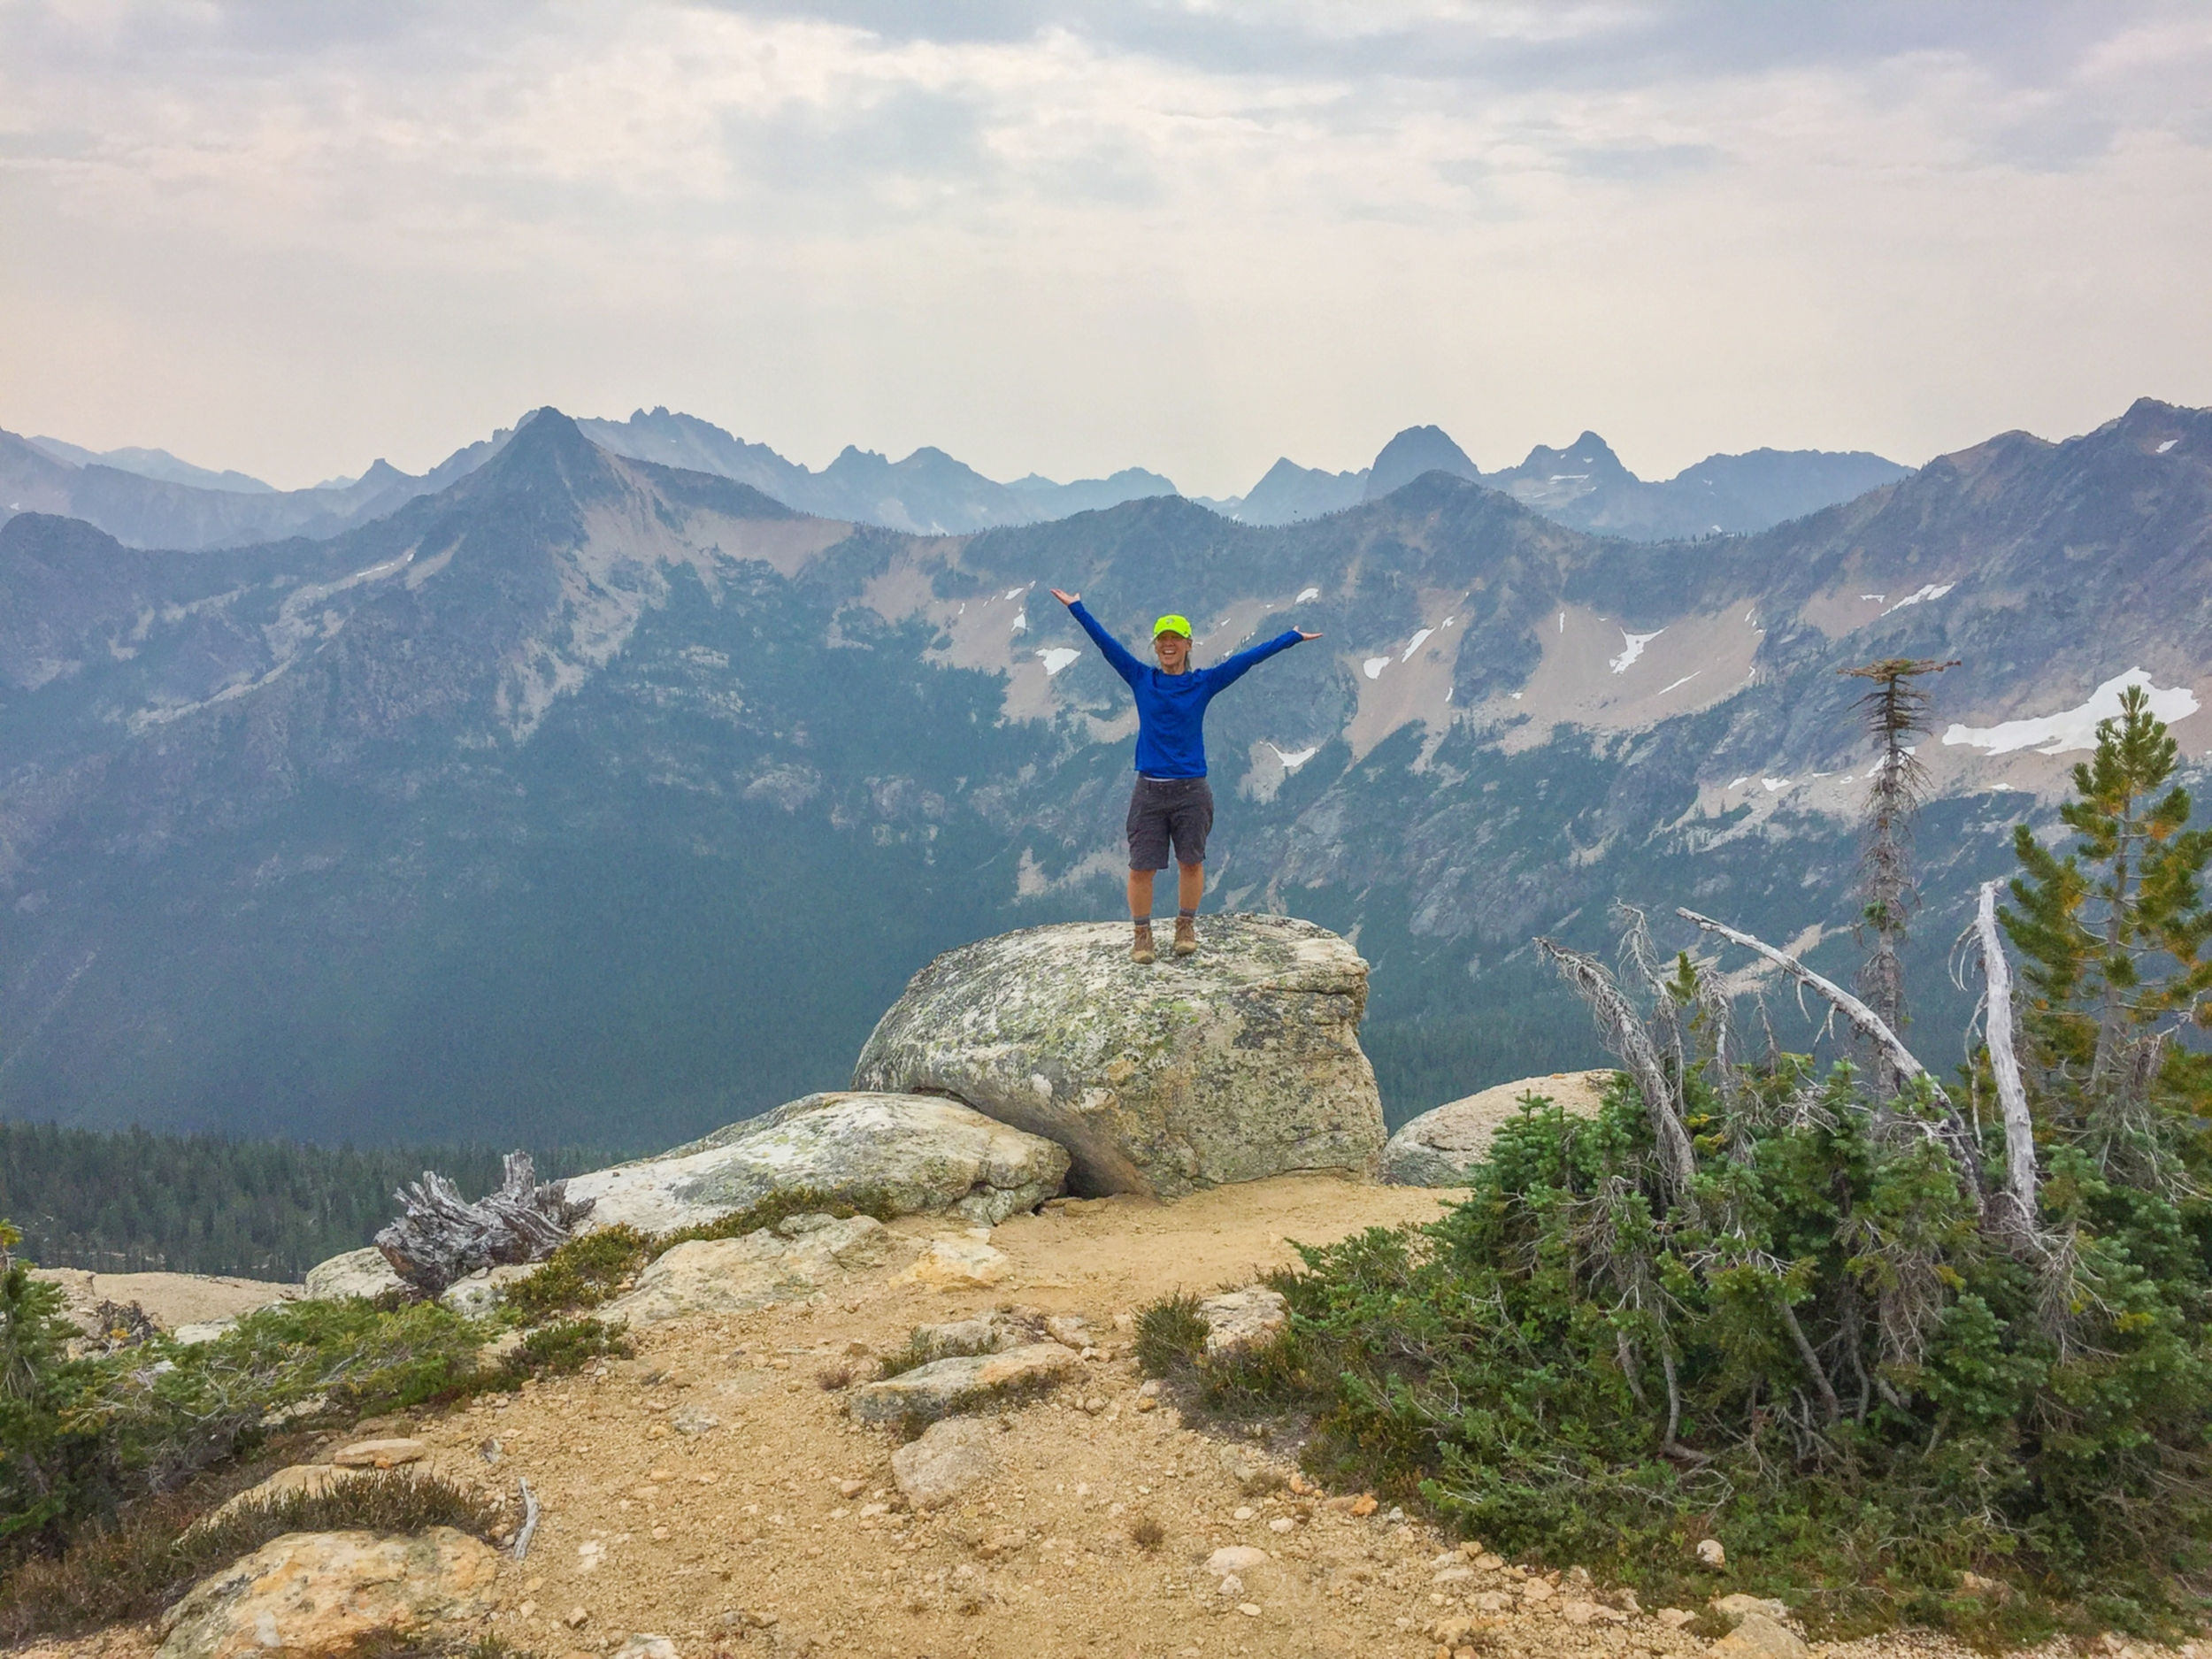 Celebrating at Cutthroat Pass, with a small, bell-shaped Liberty Bell Mountain in the background